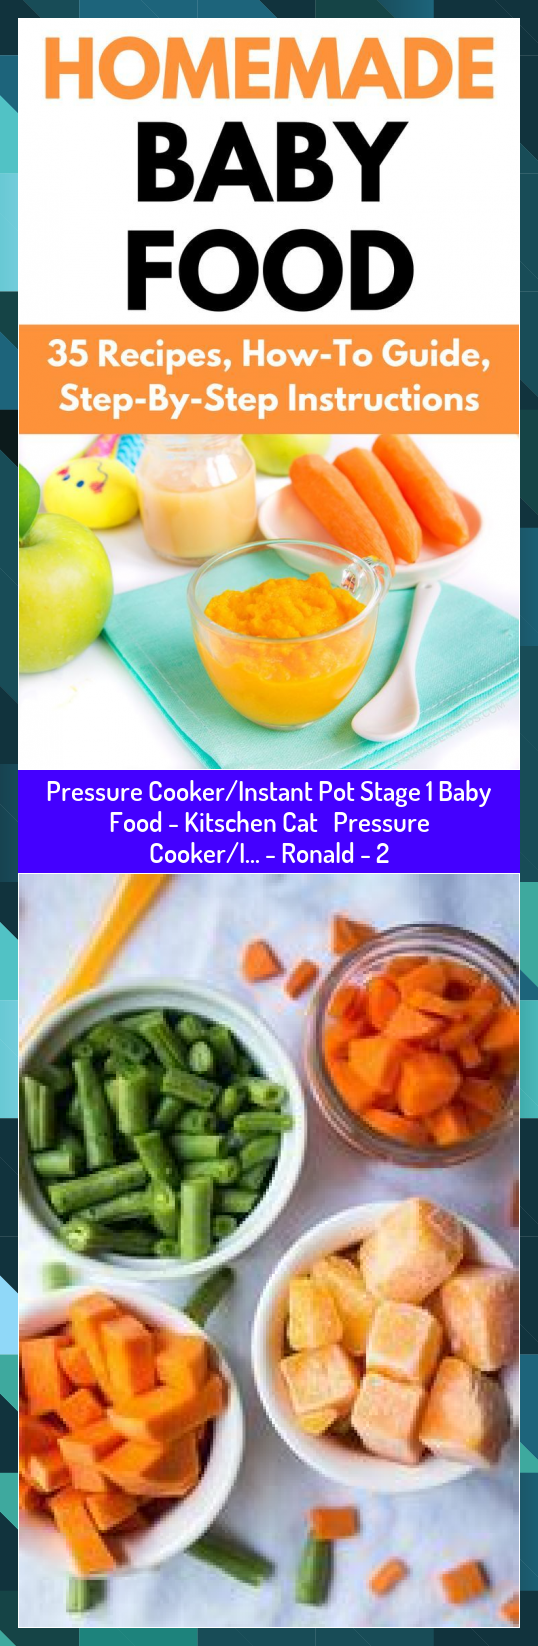 Pressure CookerInstant Pot Stage 1 Baby Food  Kitschen Cat Pressure CookerI  Ronald  2